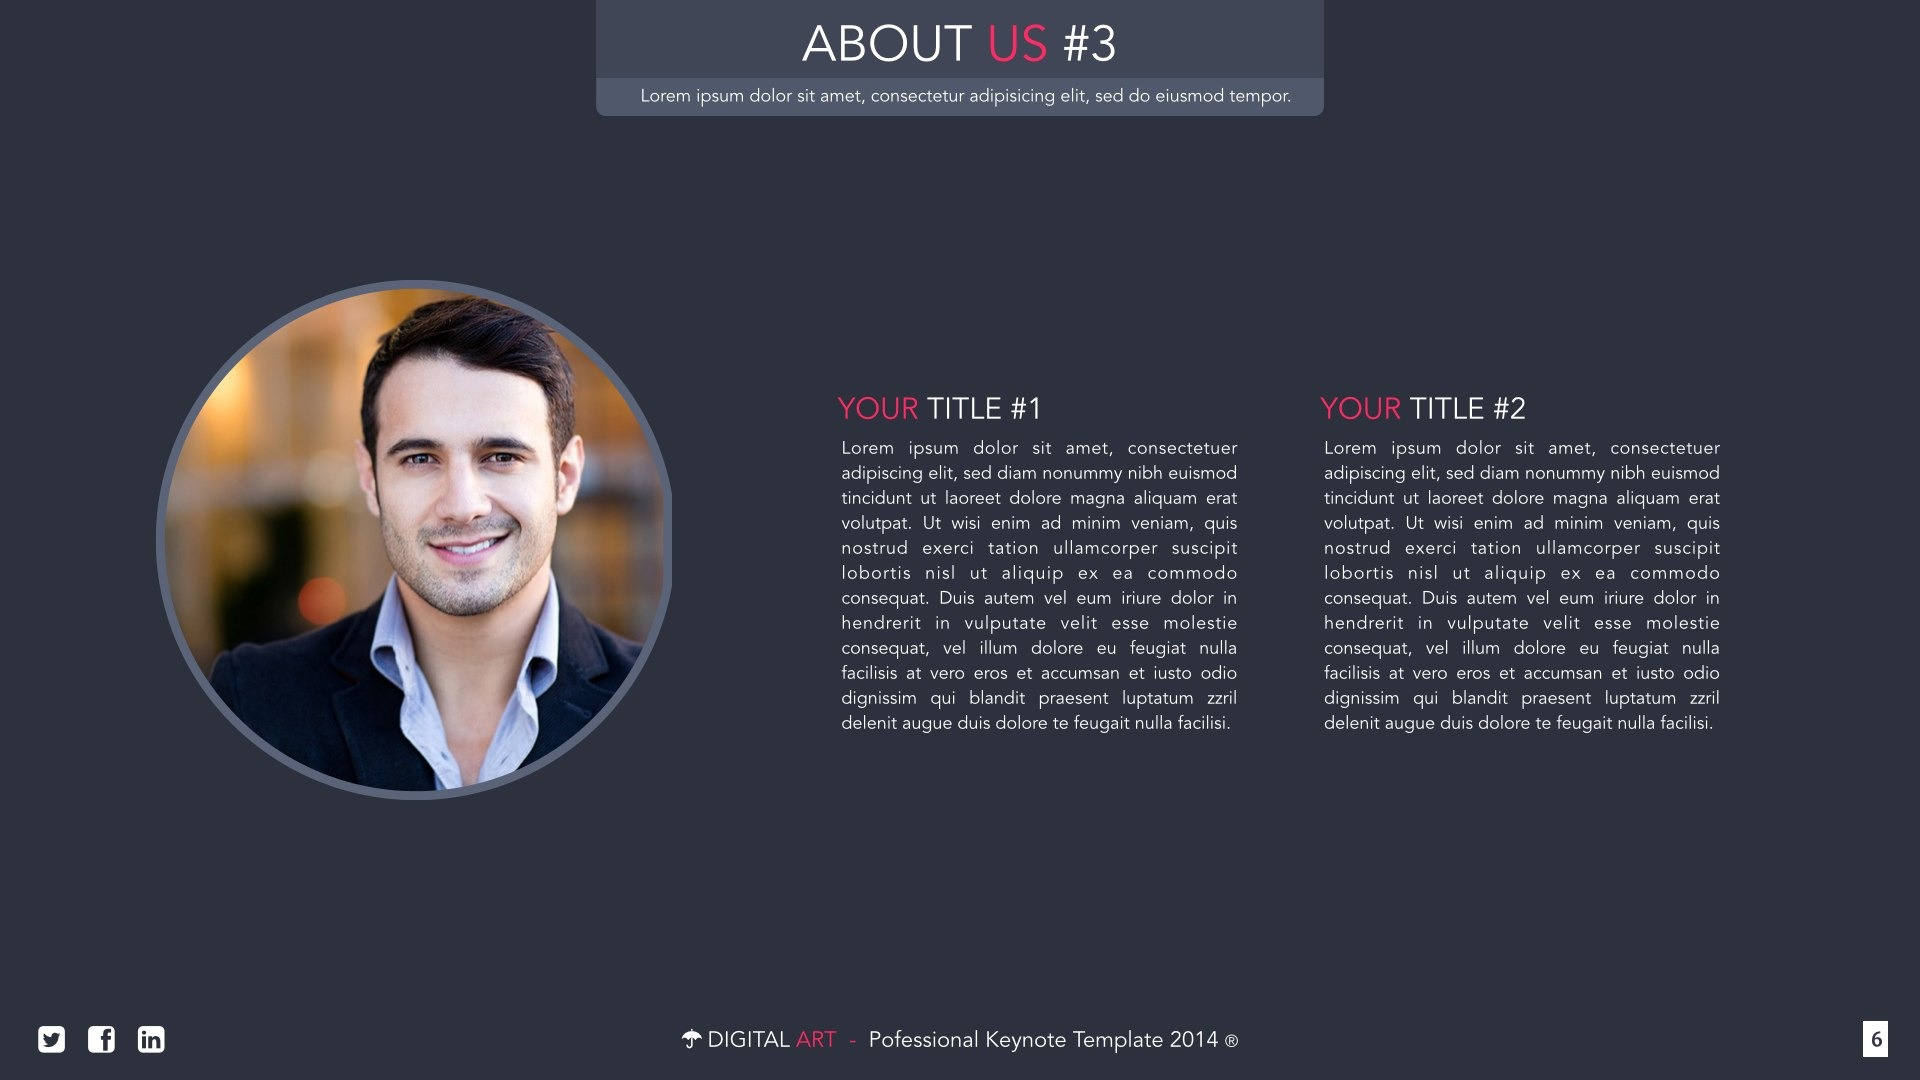 Art powerpoint template image collections templates example free digital art creative powerpoint template by vigitalart art darkdigital art dark006g alramifo image collections toneelgroepblik Images